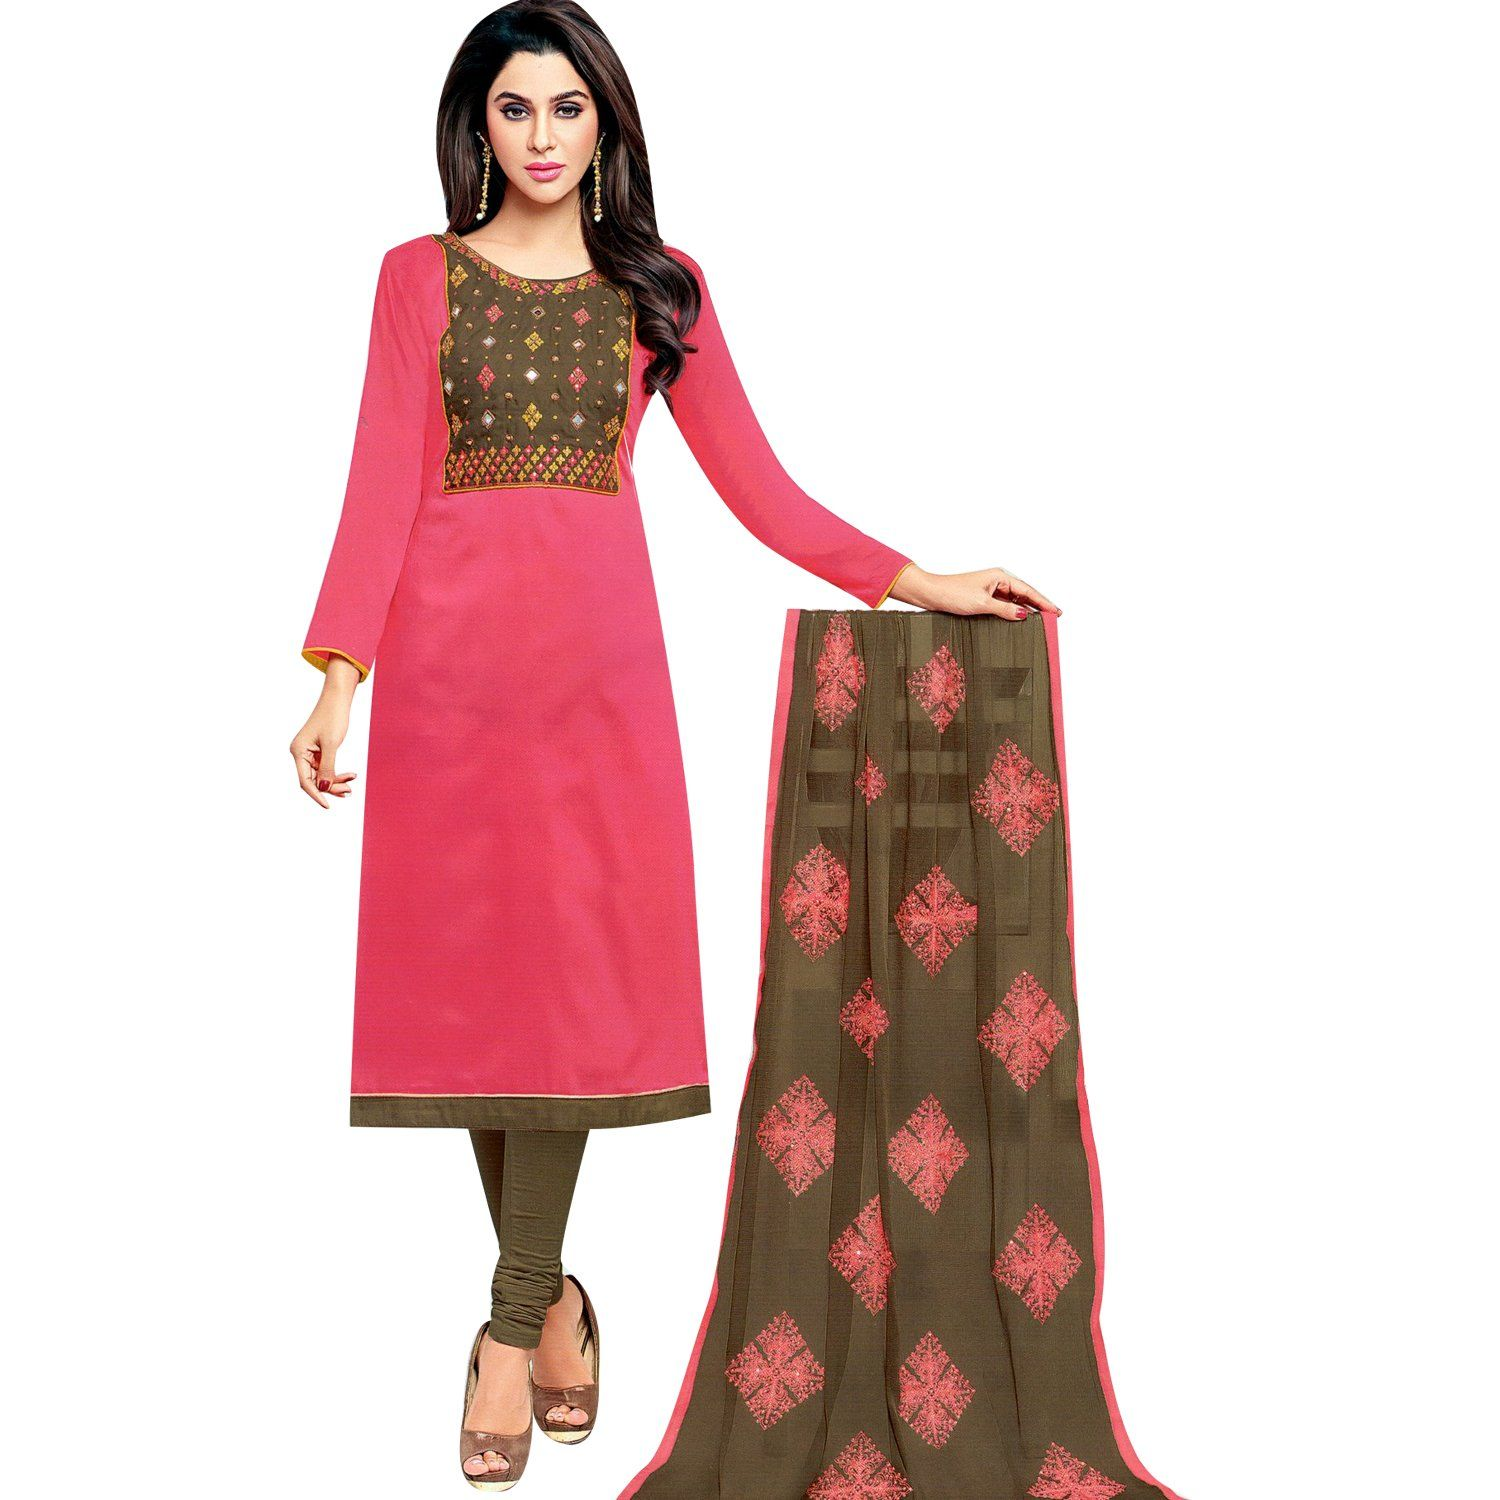 ea9f39bc4a LADYLINE Womens Cotton-Silk Embroidered Salwar Kameez Formal Indian Dress  Ready to wear Salwar Suit #SalwarKameez #NewStuff #ShopNow #LowestPrice ...